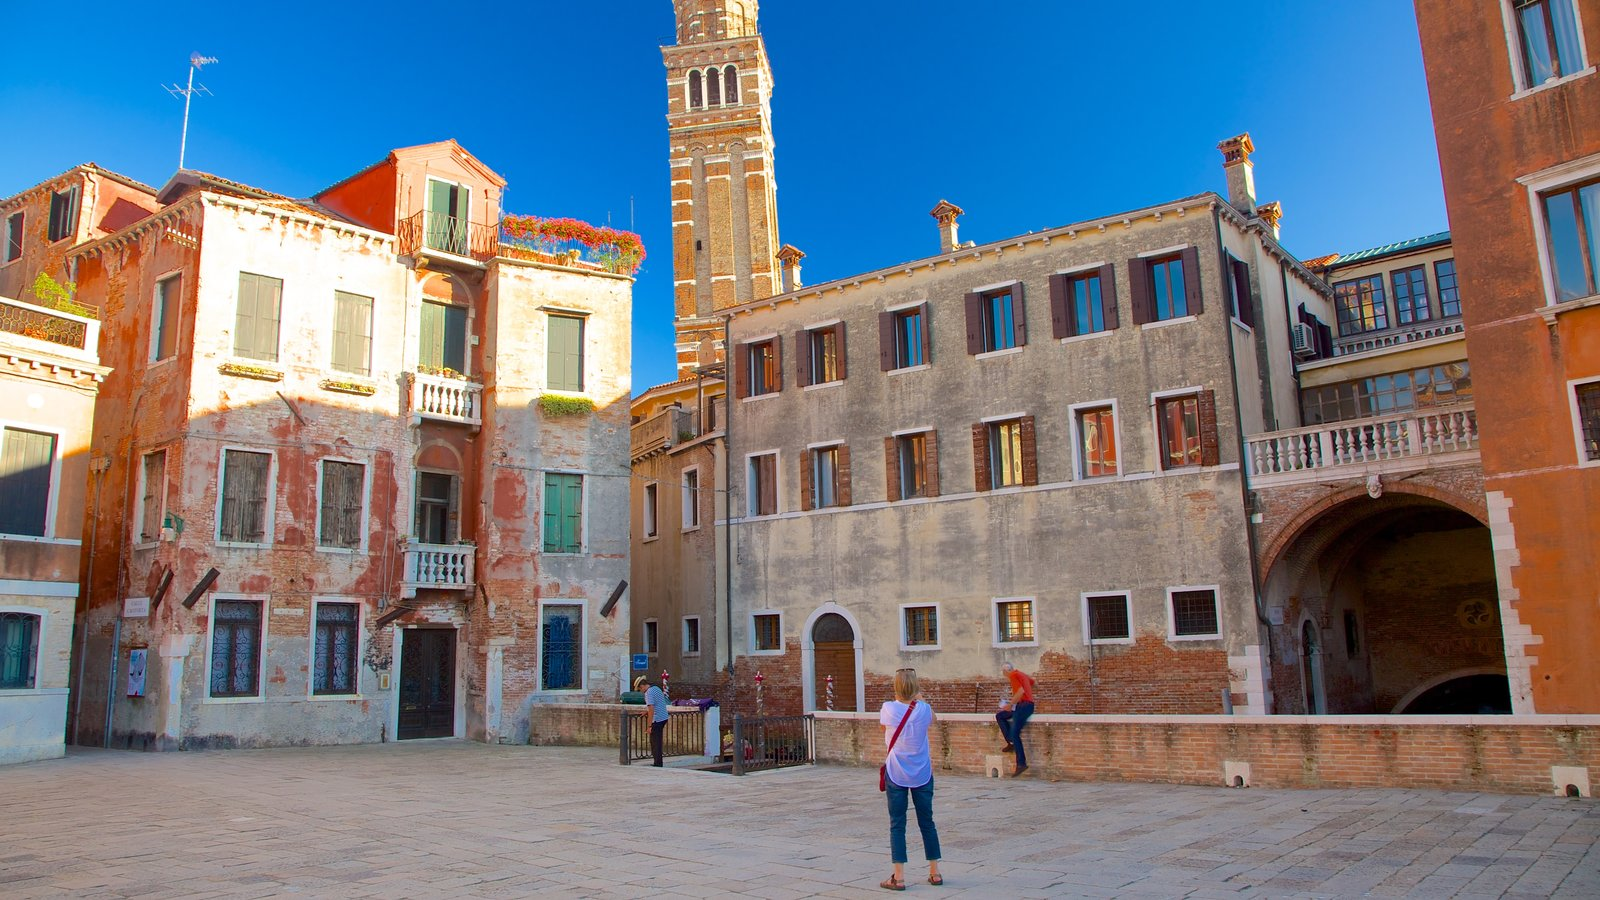 San Marco featuring a small town or village, heritage architecture and a square or plaza